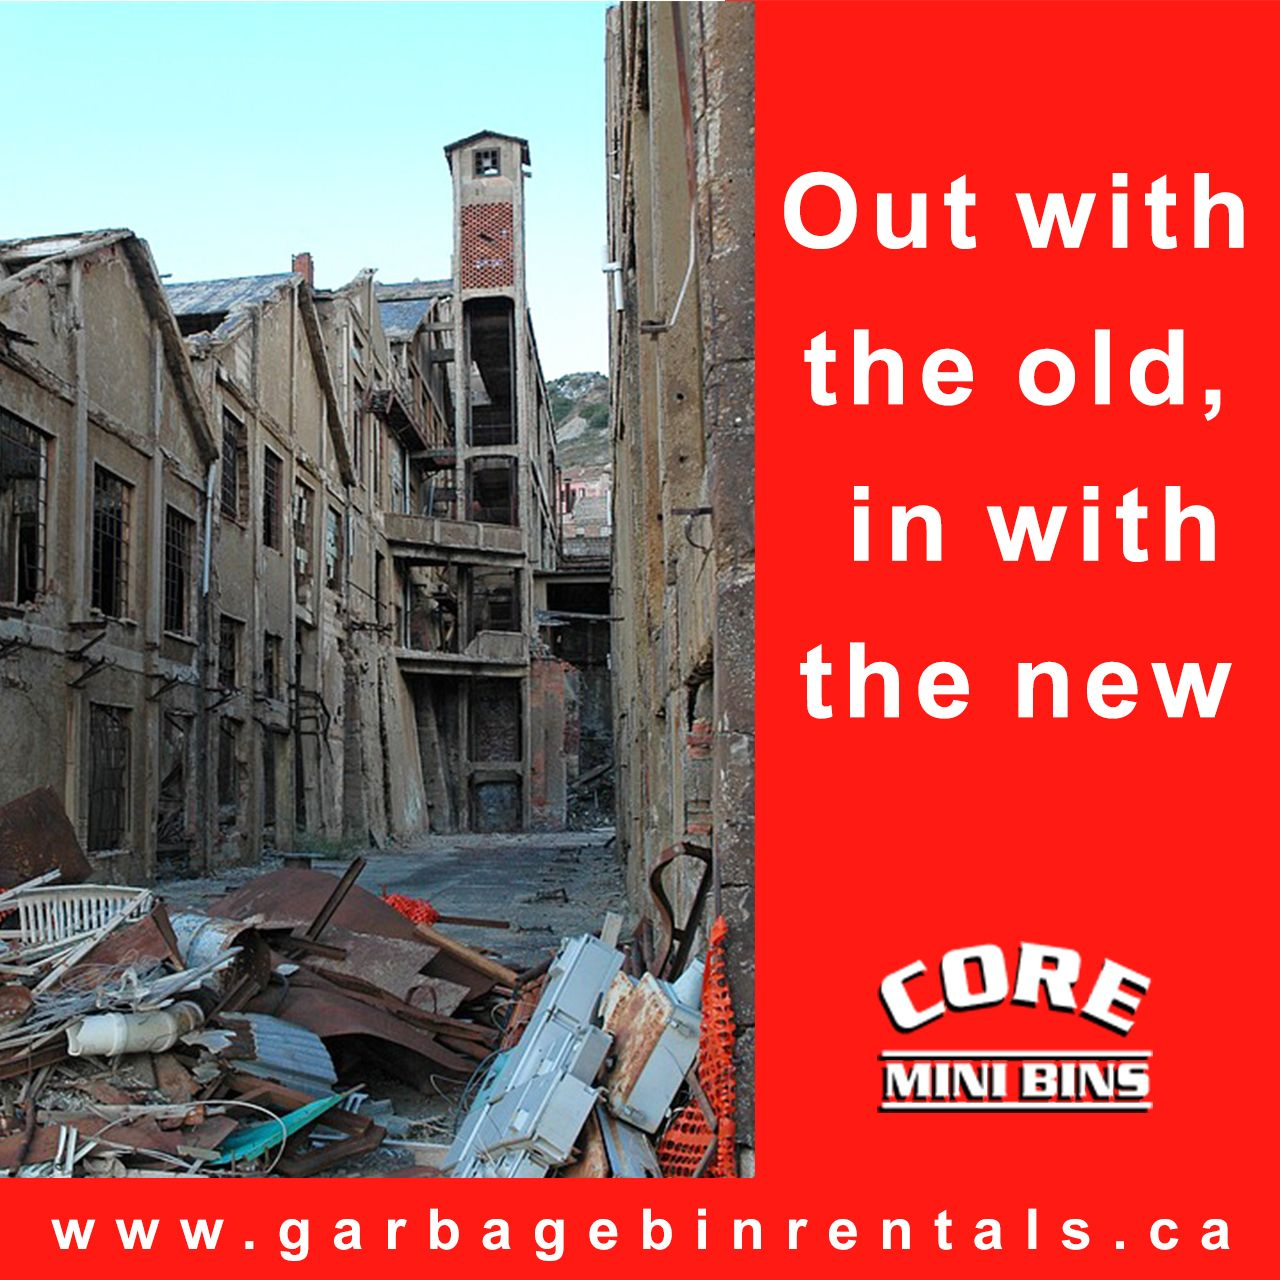 Our demolition team has the knowledge and expertise to